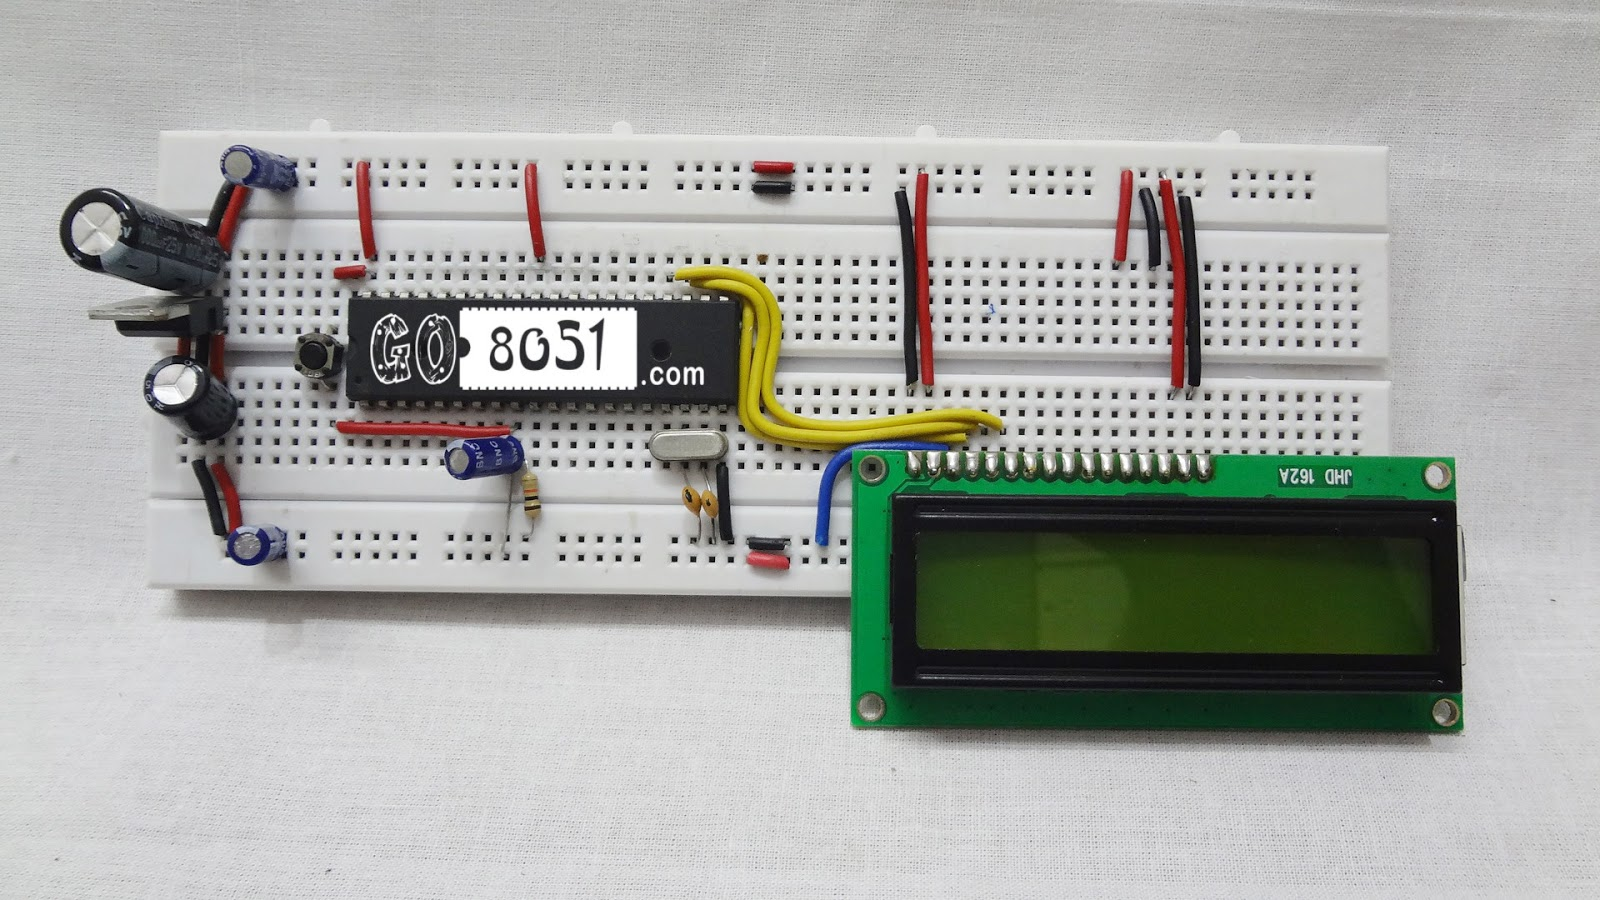 Chapter 114 Interfacing 16x2 Lcd With 8051 Microcontroller On Programmer Circuit Now Connect Port 24 Of To Pin 11